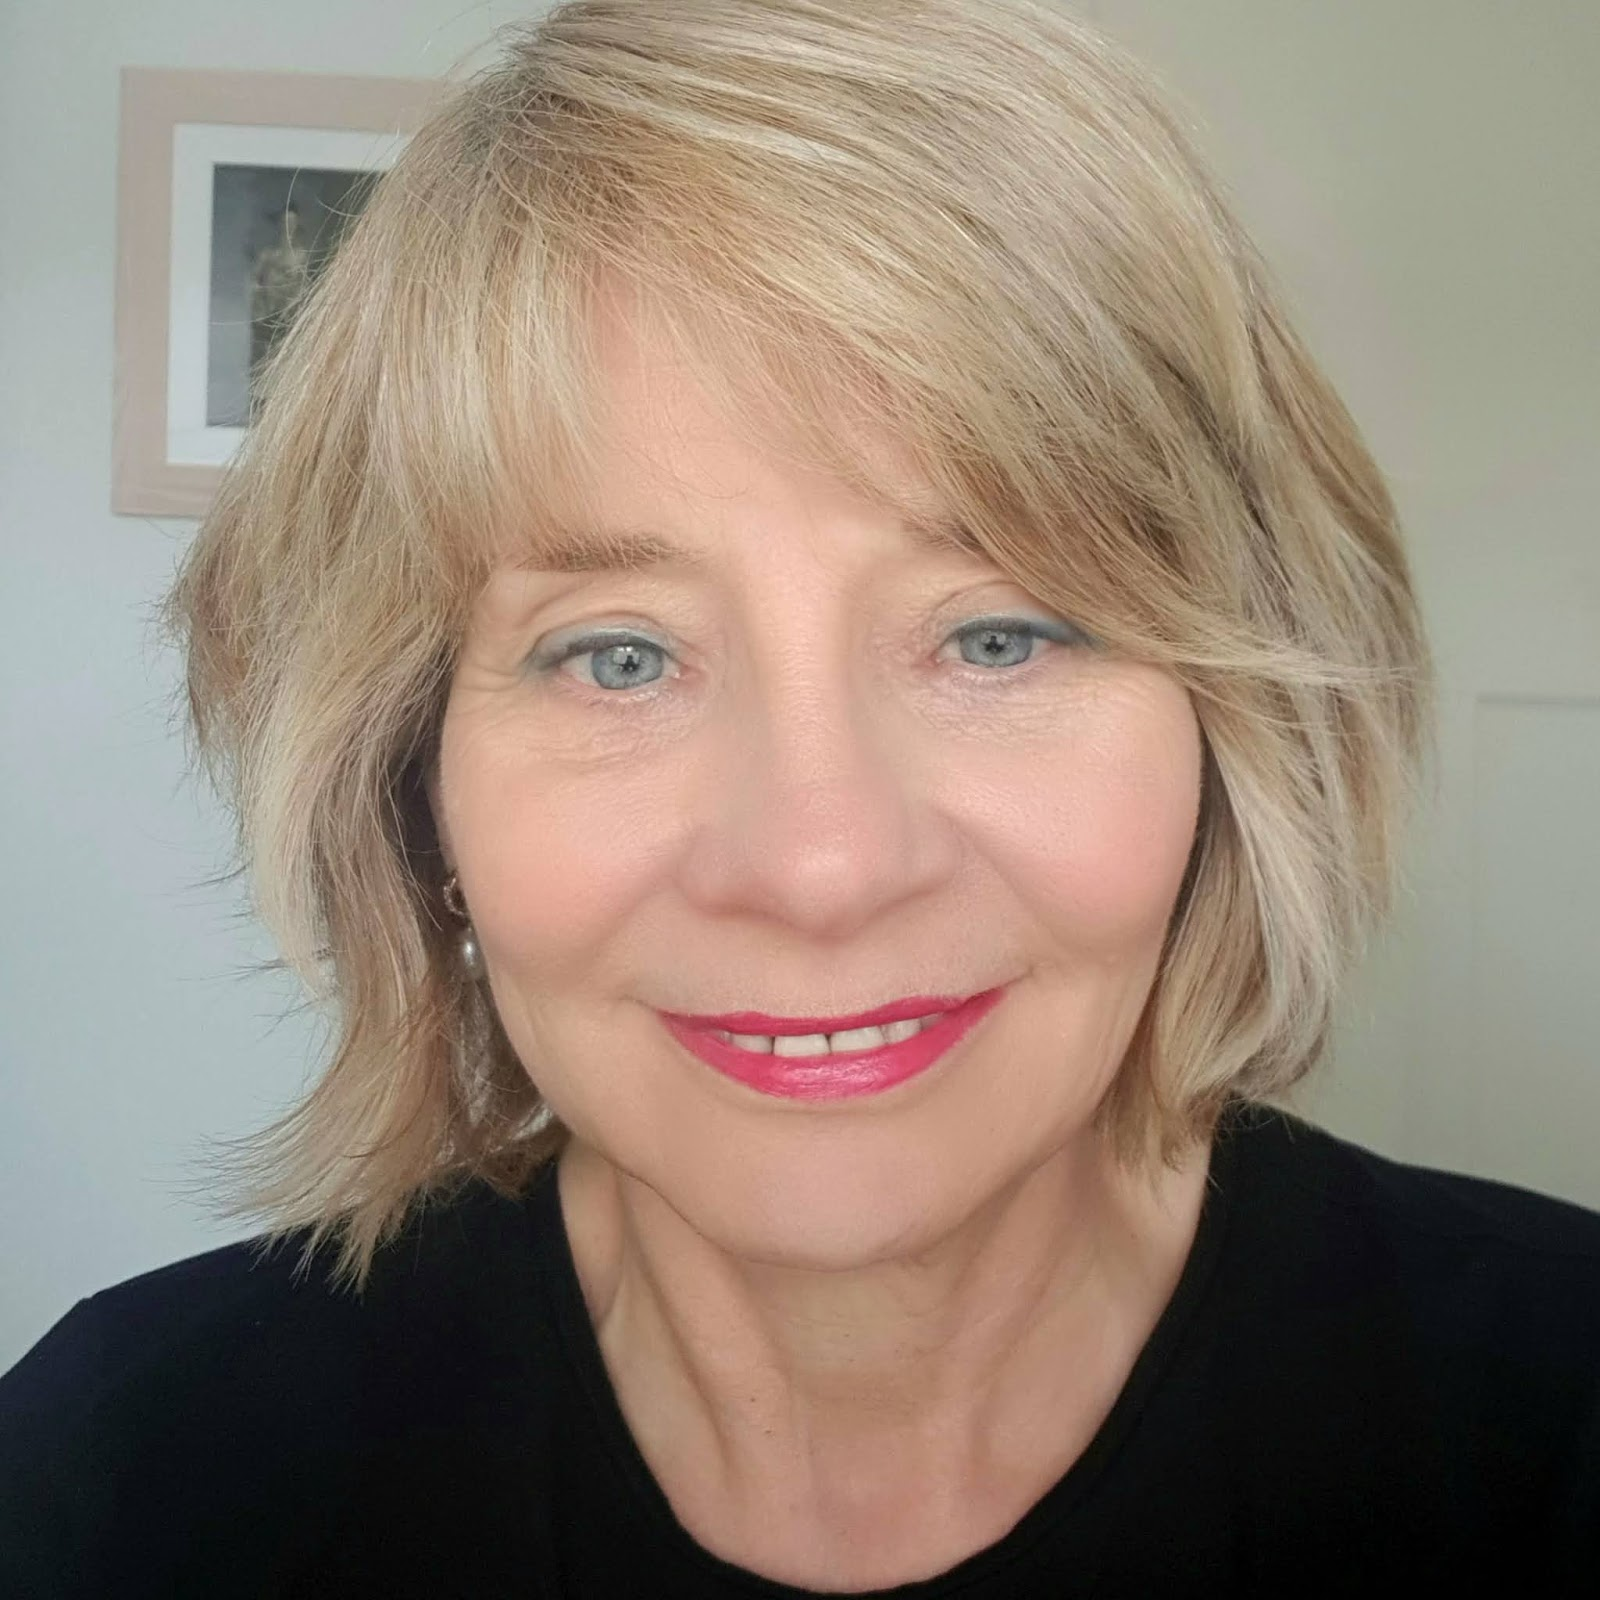 Over 50s woman breaks a makeup rule by wearing a blue eyeshadow as eyeliner. Shock!